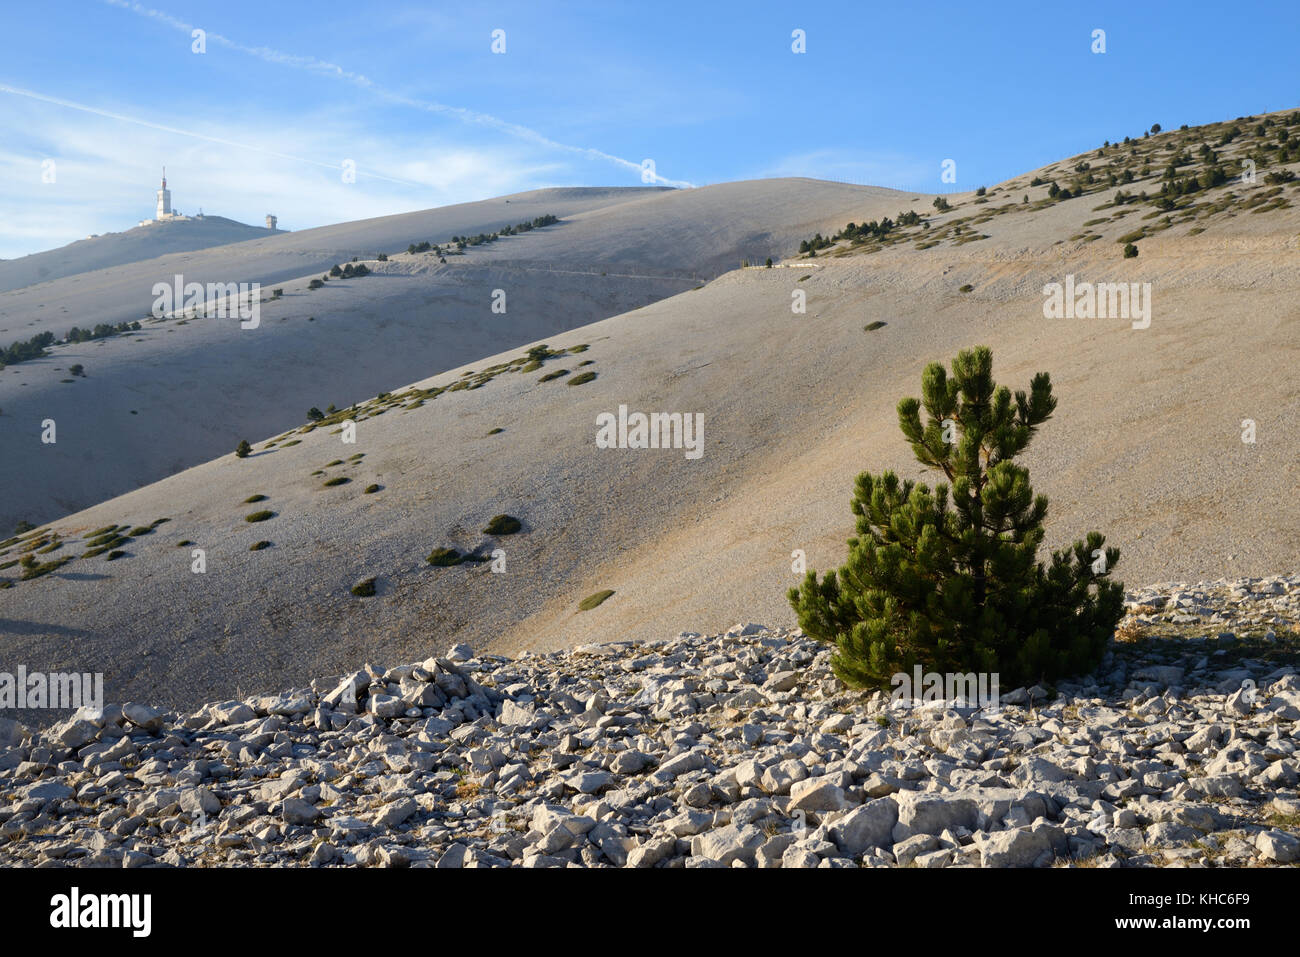 Sparse Vegetation & Single Pine Tree on the Barren Eastern Slopes of the Mont Ventoux Mountain, the 'Giant - Stock Image